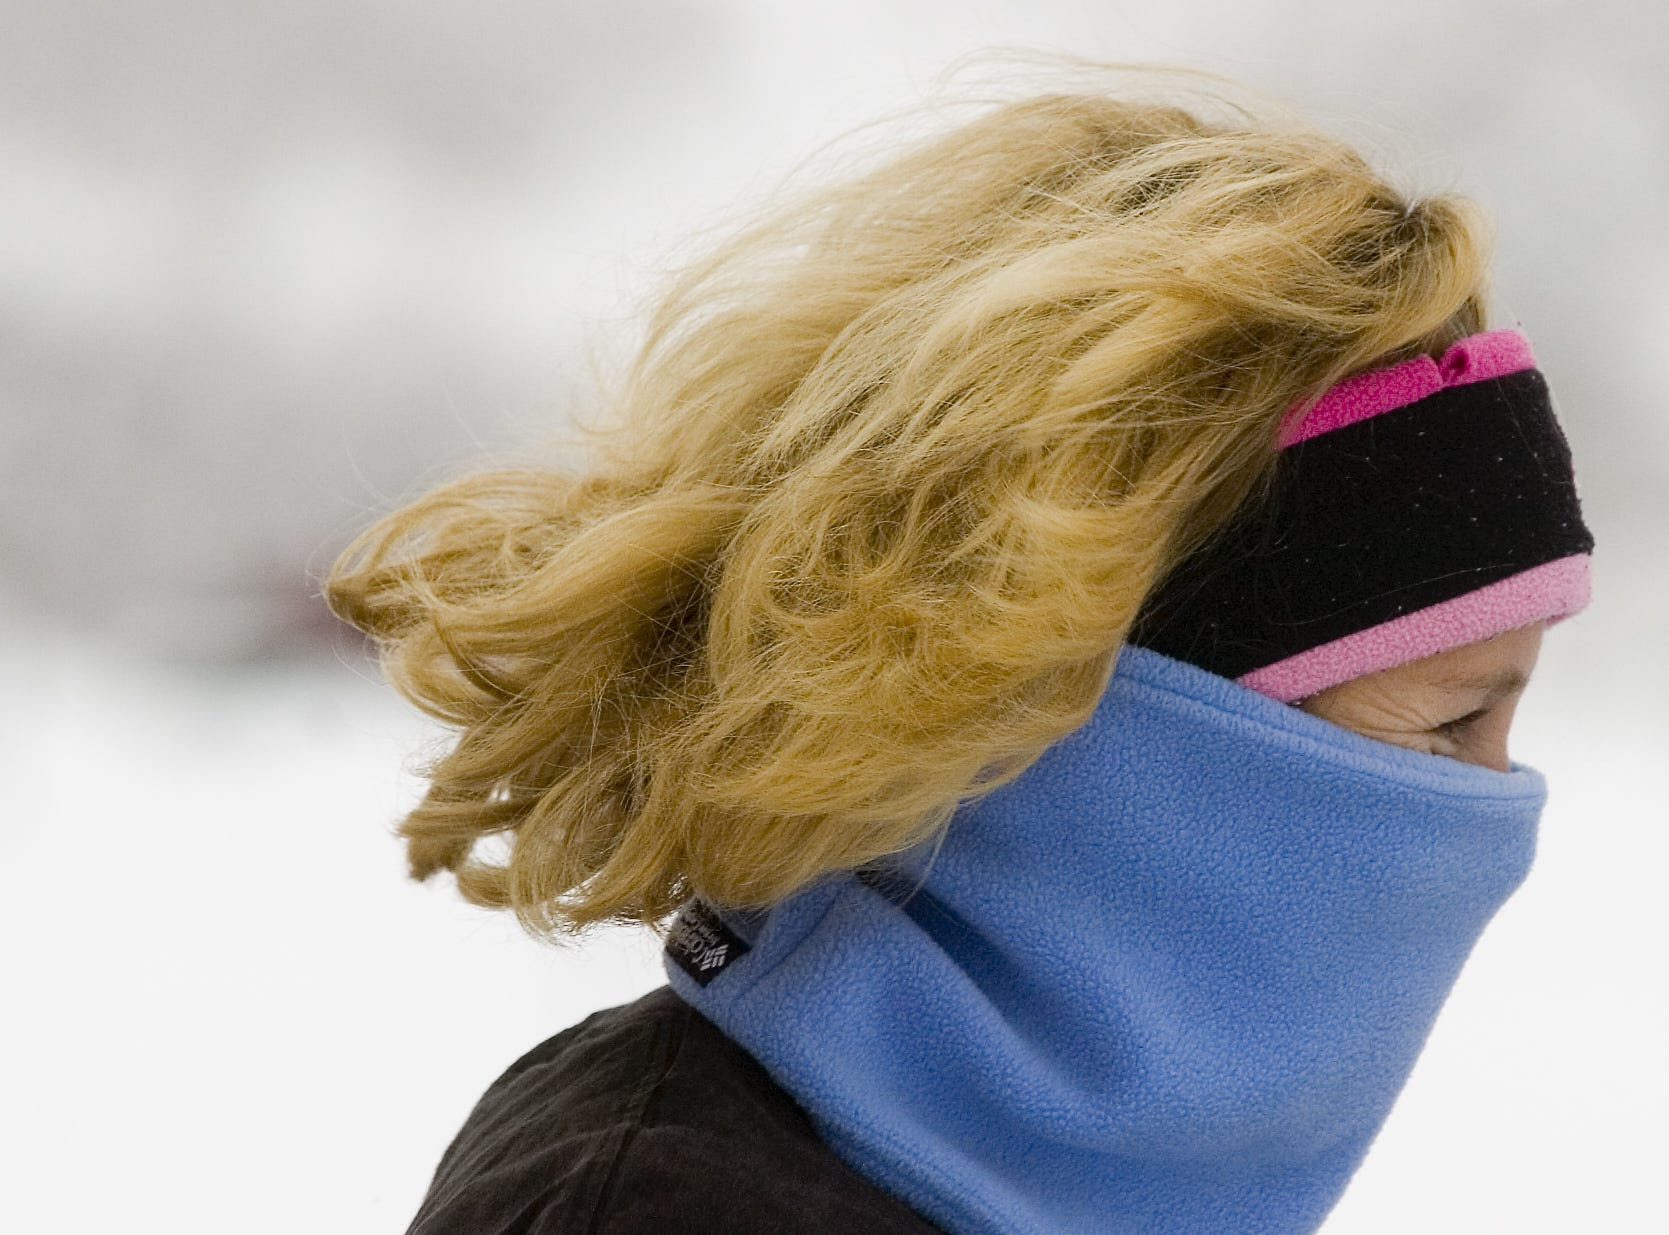 Gail Markstein of Colesville is protected from the cold as she  participates in the annual YMCA 5K Resolution Run in 2007, held on New Year's Eve at Otsiningo Park.